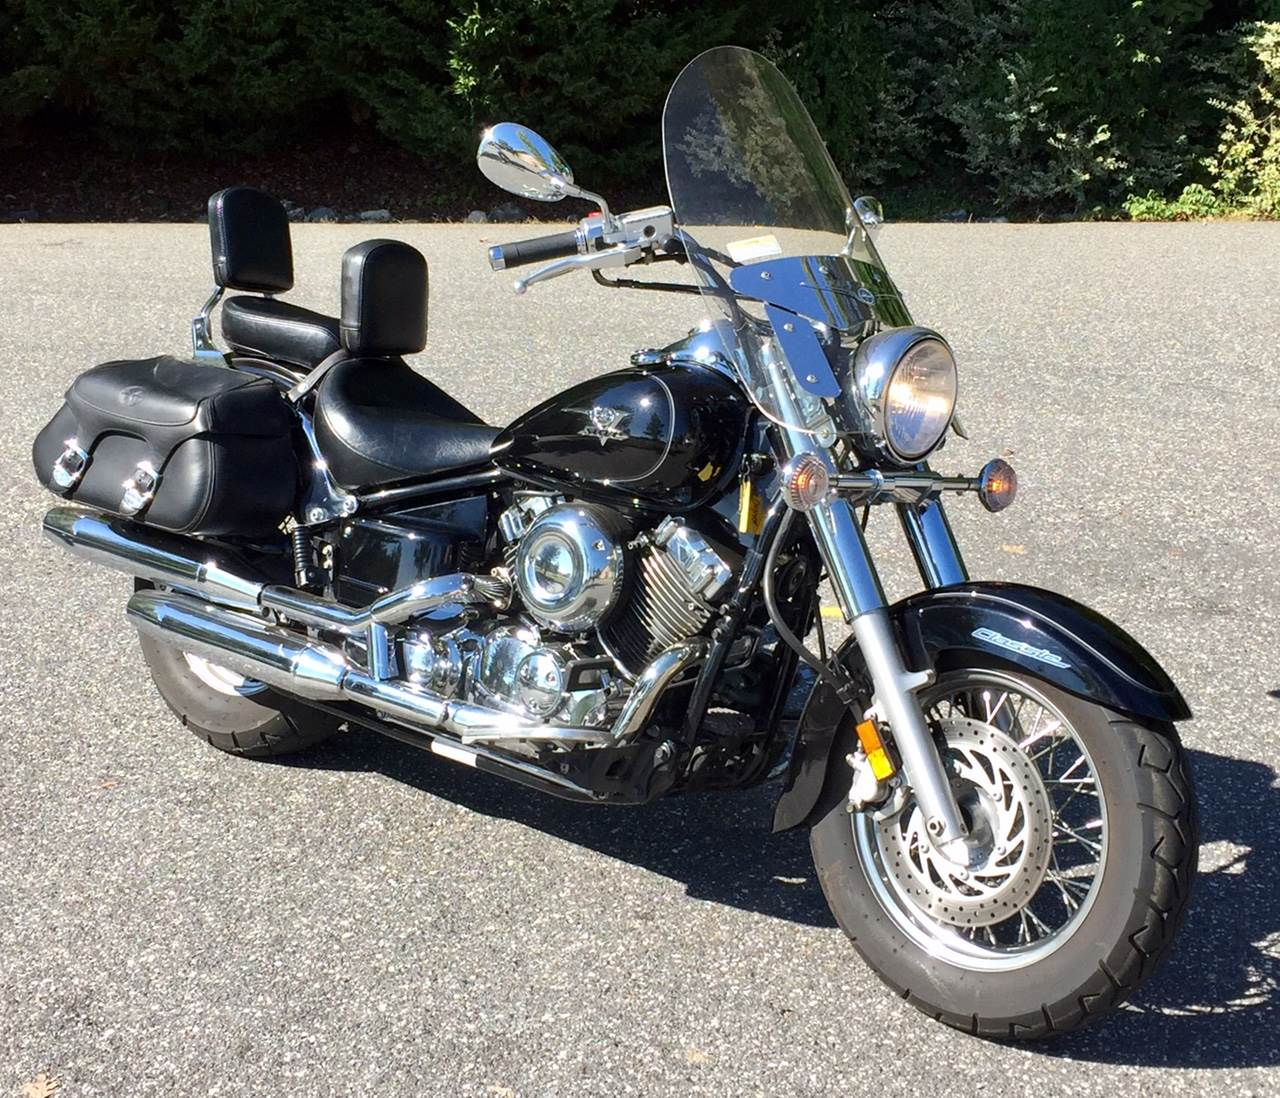 used 2007 yamaha v star 650 motorcycles in lowell nc stock number n a. Black Bedroom Furniture Sets. Home Design Ideas